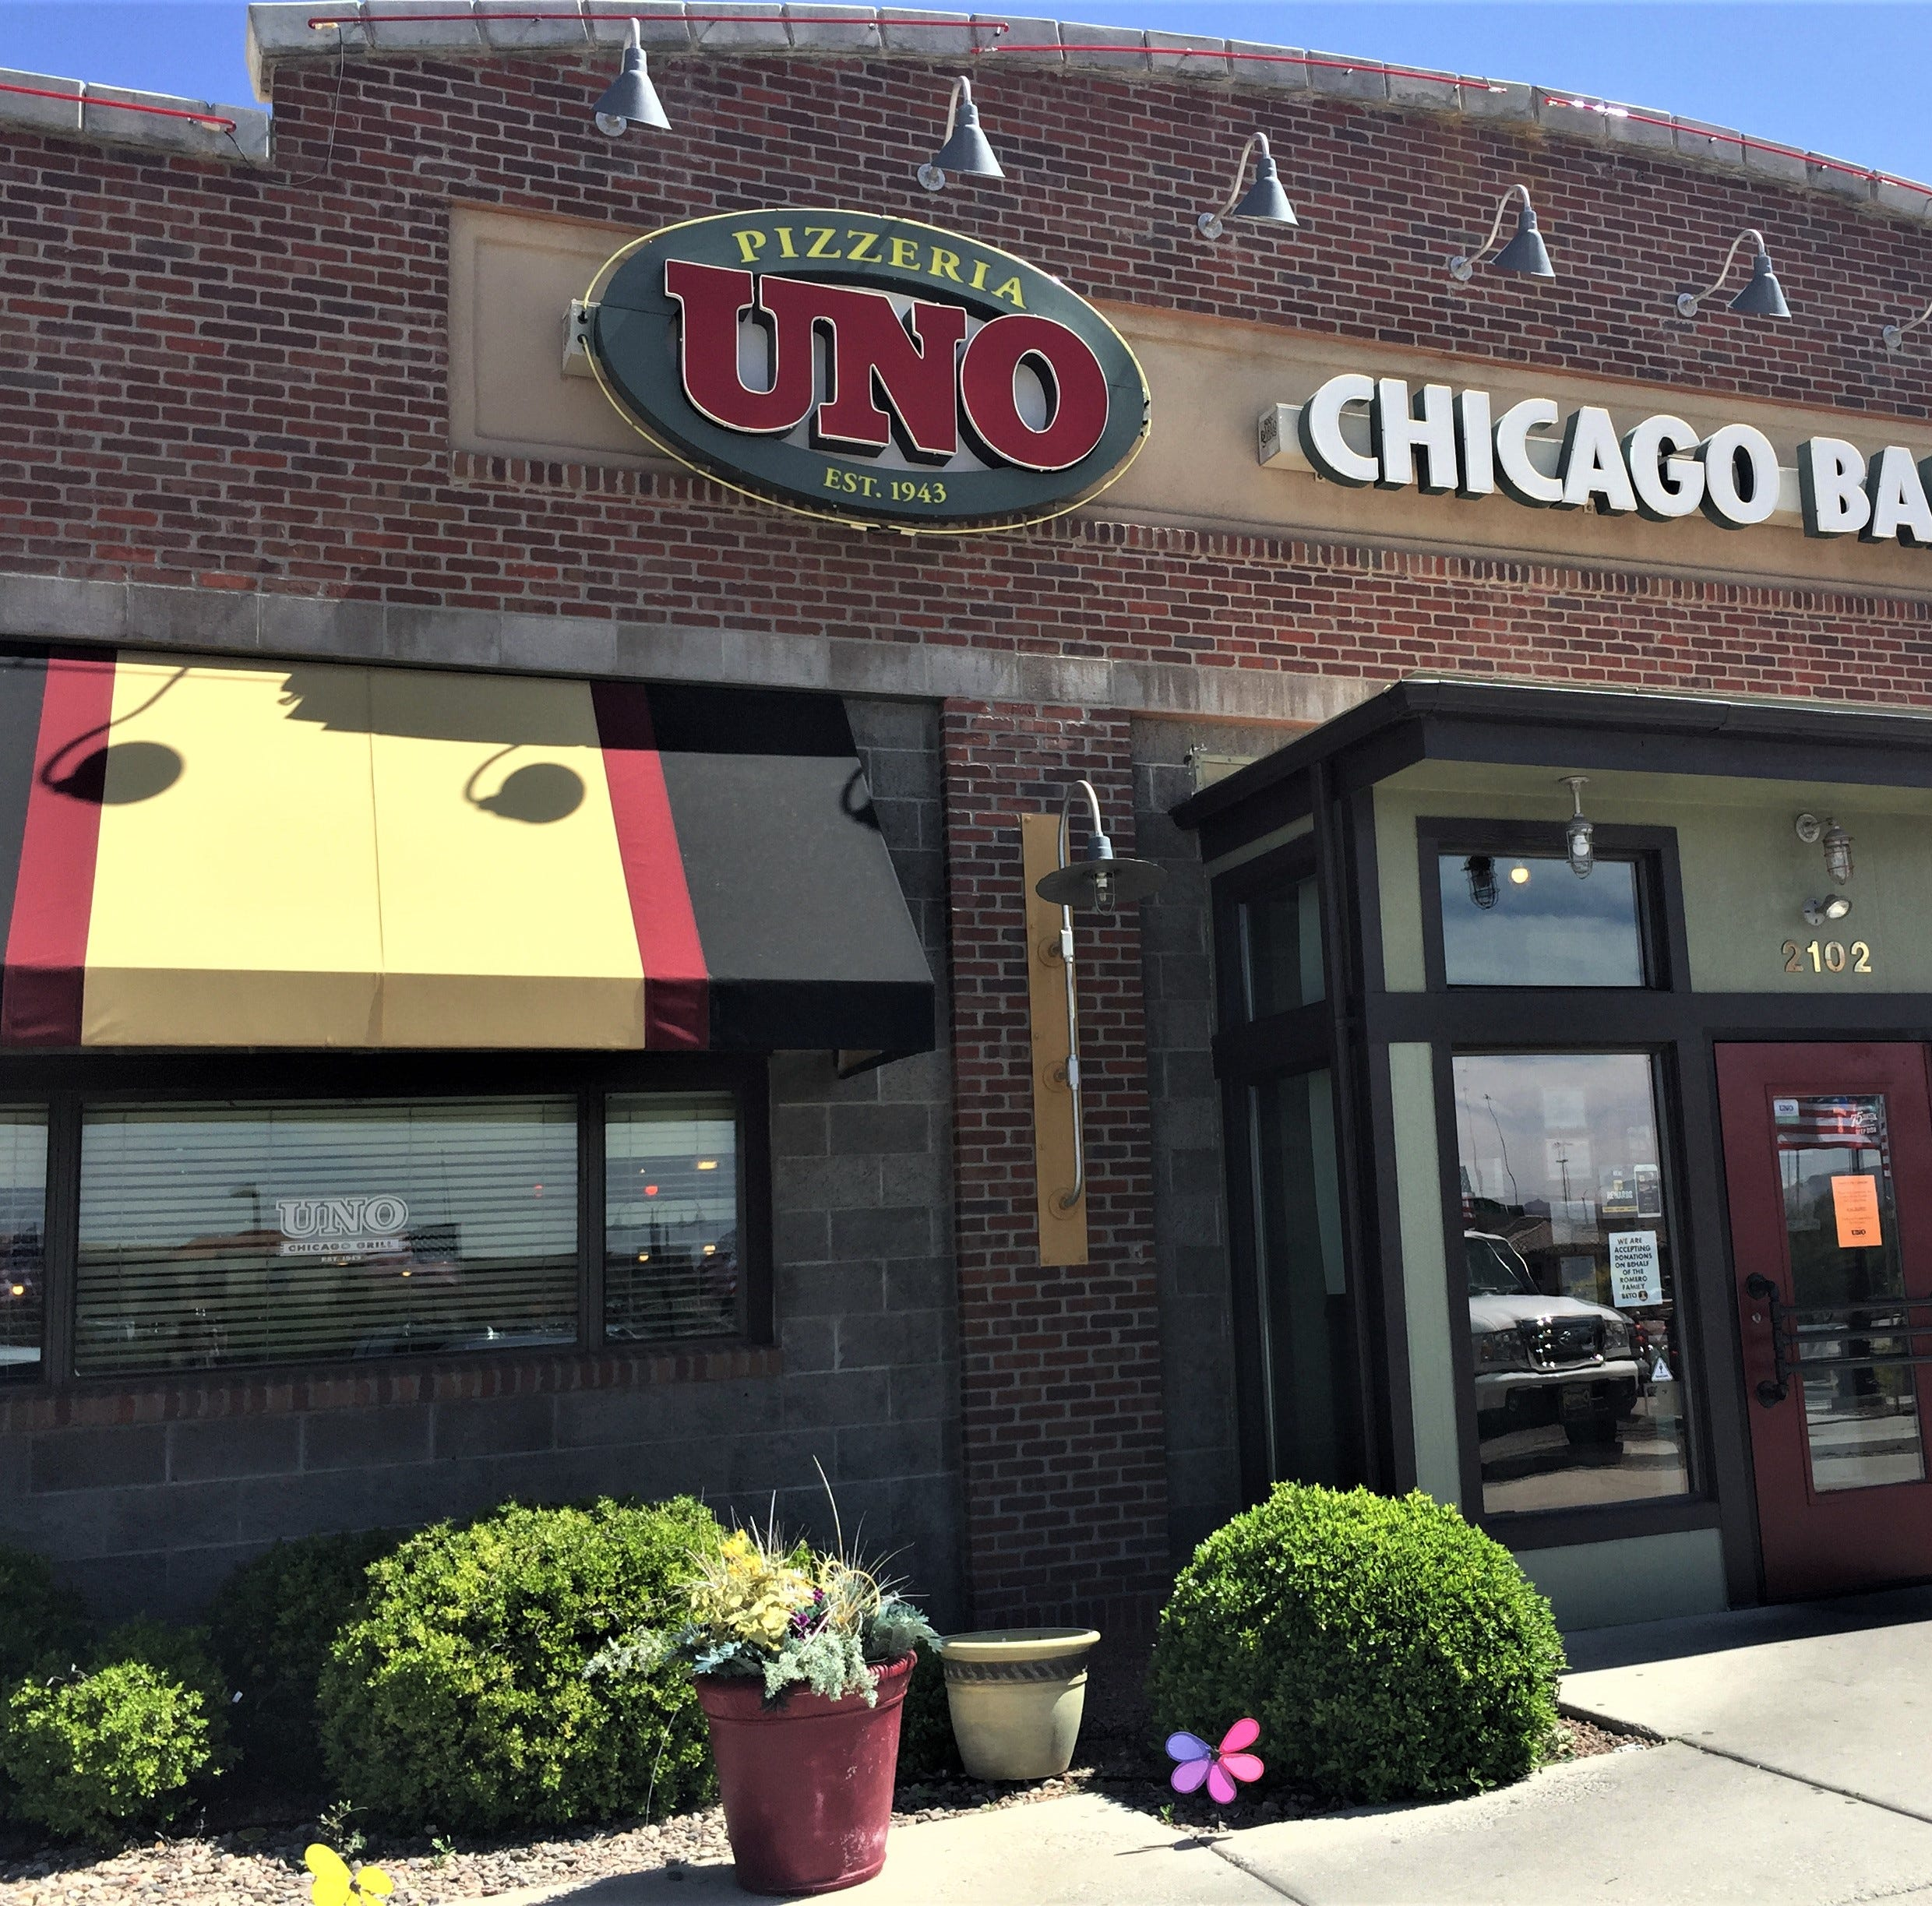 Uno Pizzeria & Grill manager discusses closure, sale of popular eatery